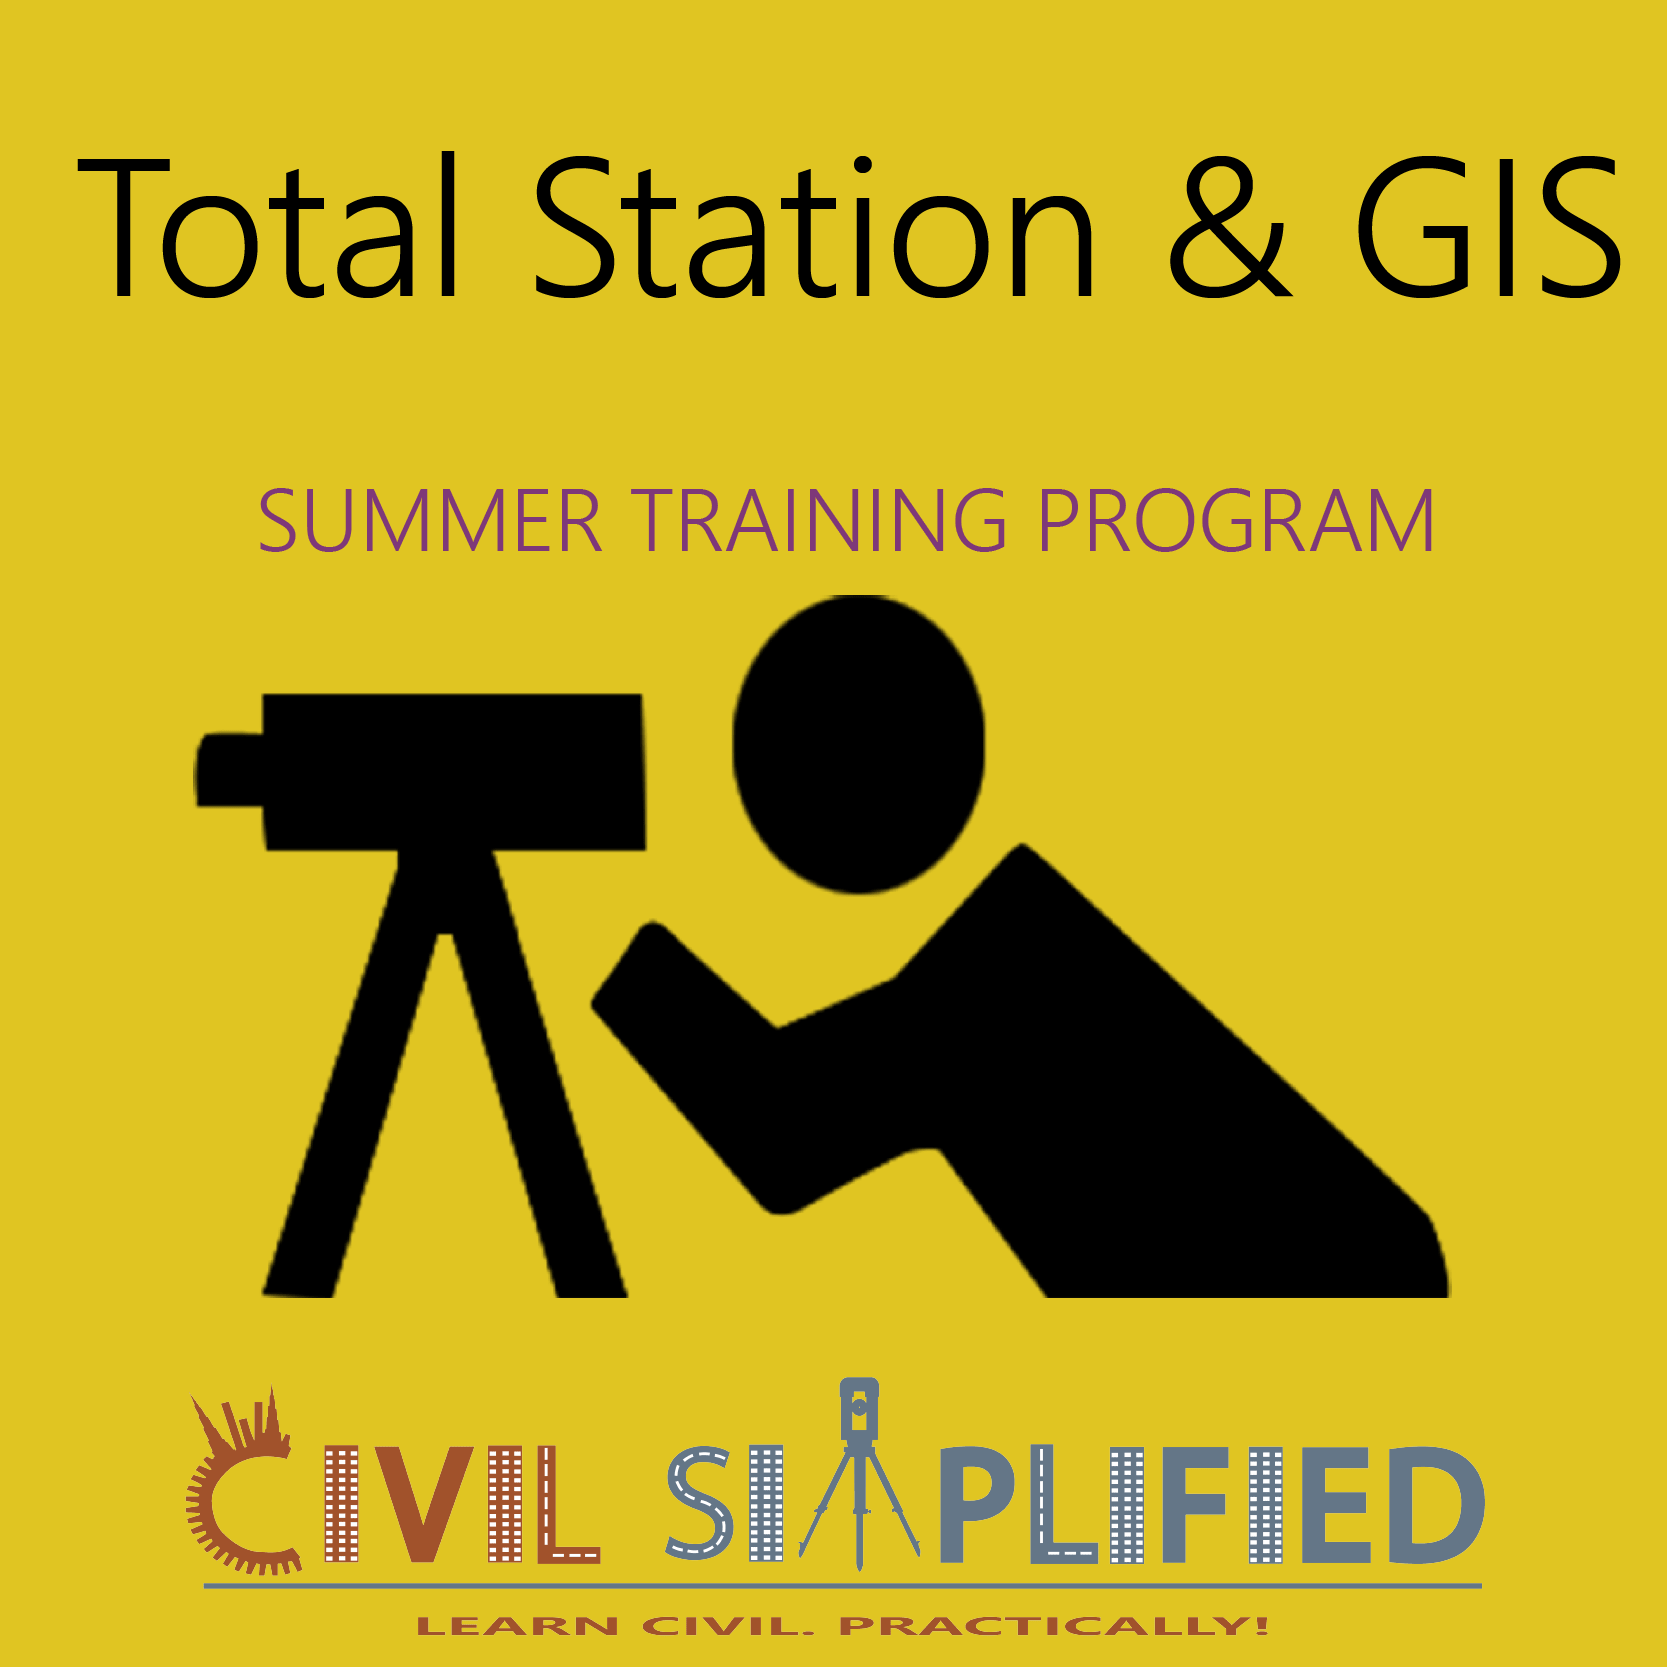 Summer Training Program in Civil Engineering - Total Station and GIS in Mumbai